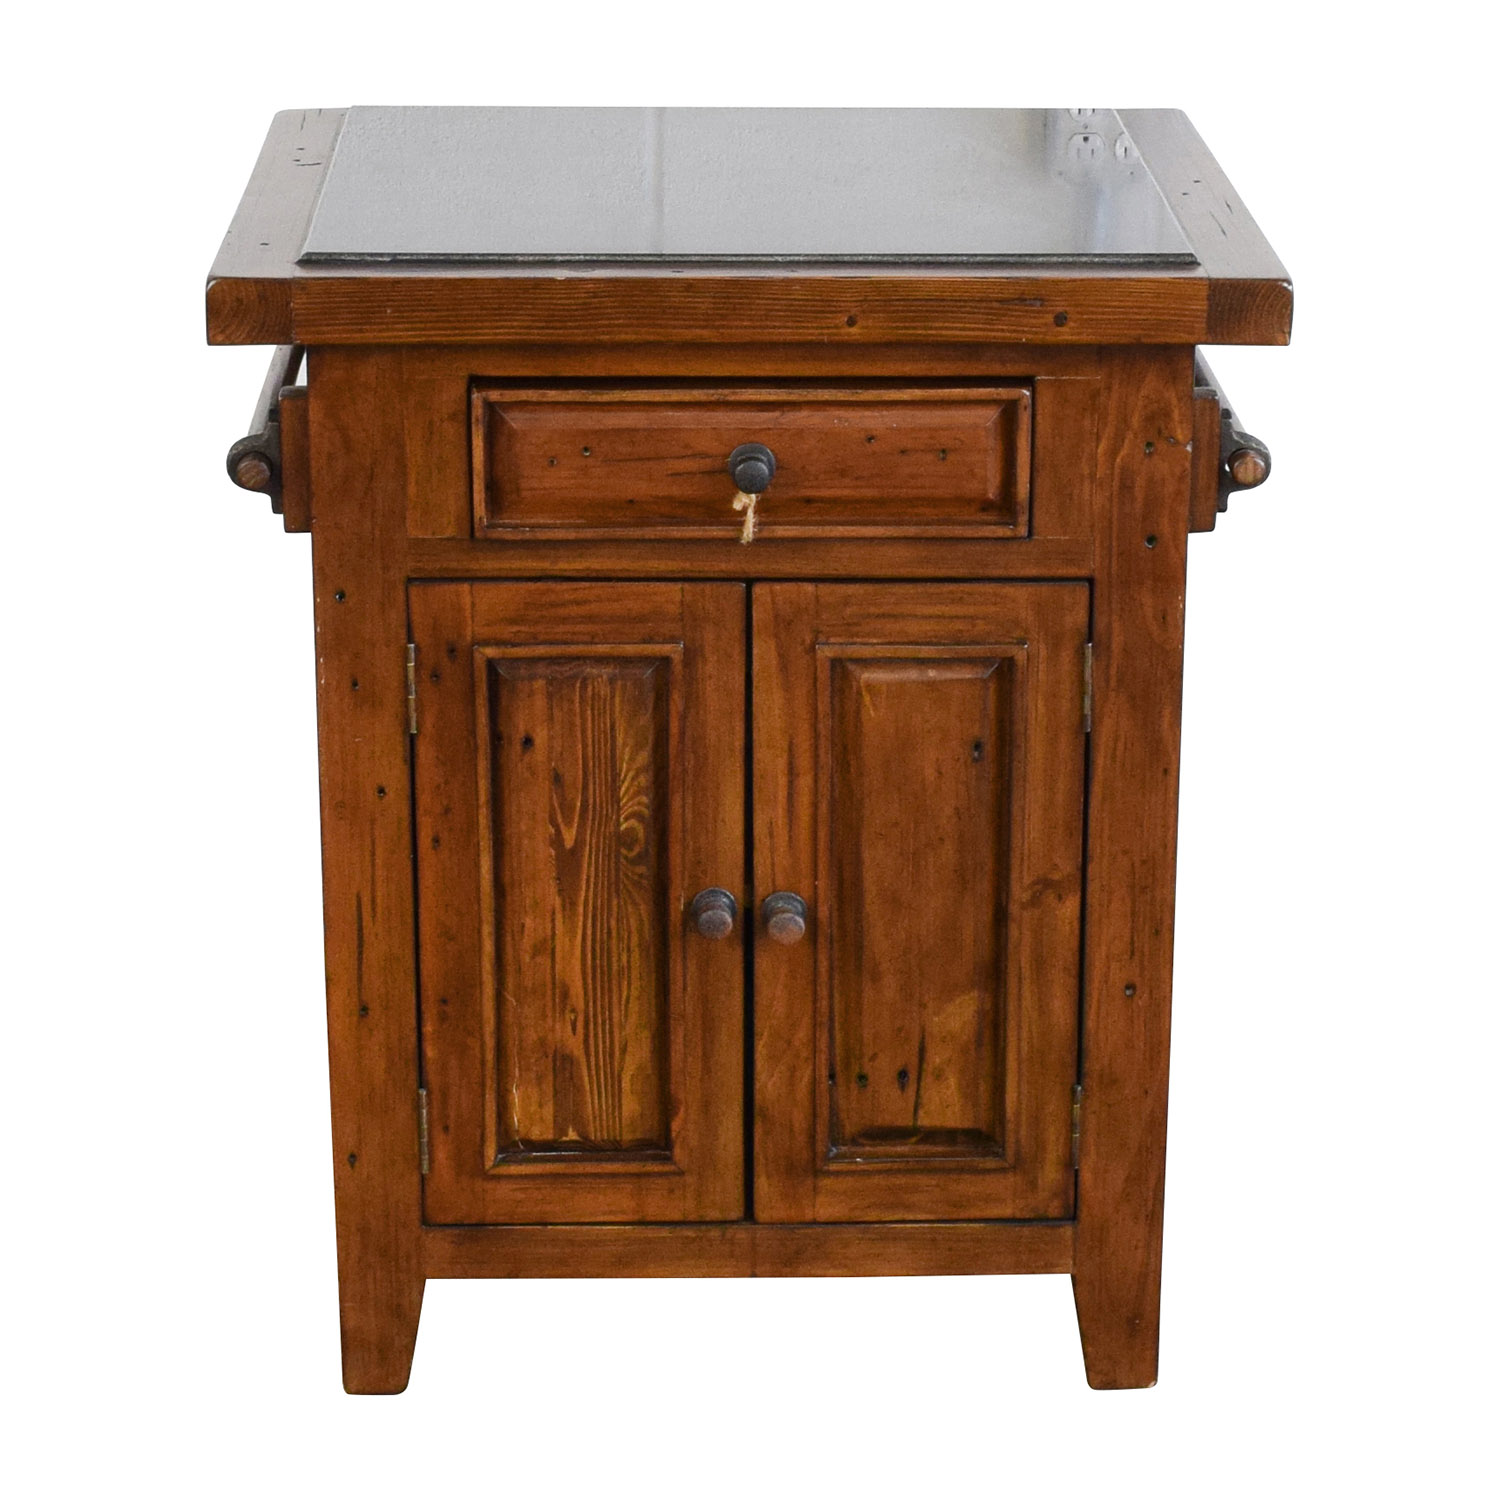 Wood Kitchen Island with Black Marble Top used